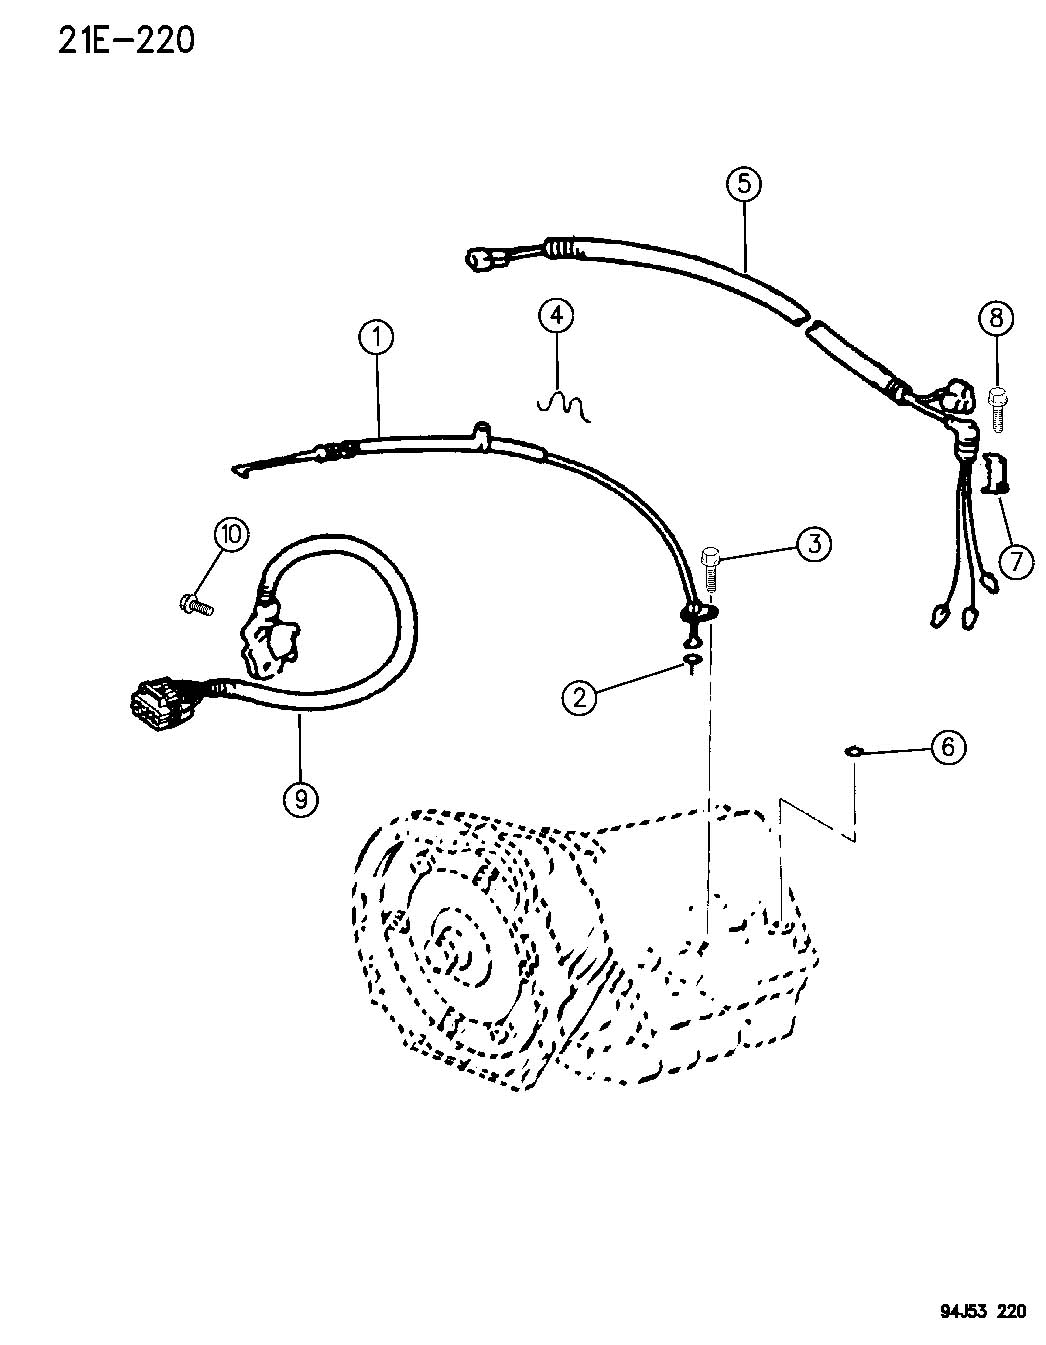 1984 jeep wagoneer xj wiring diagram